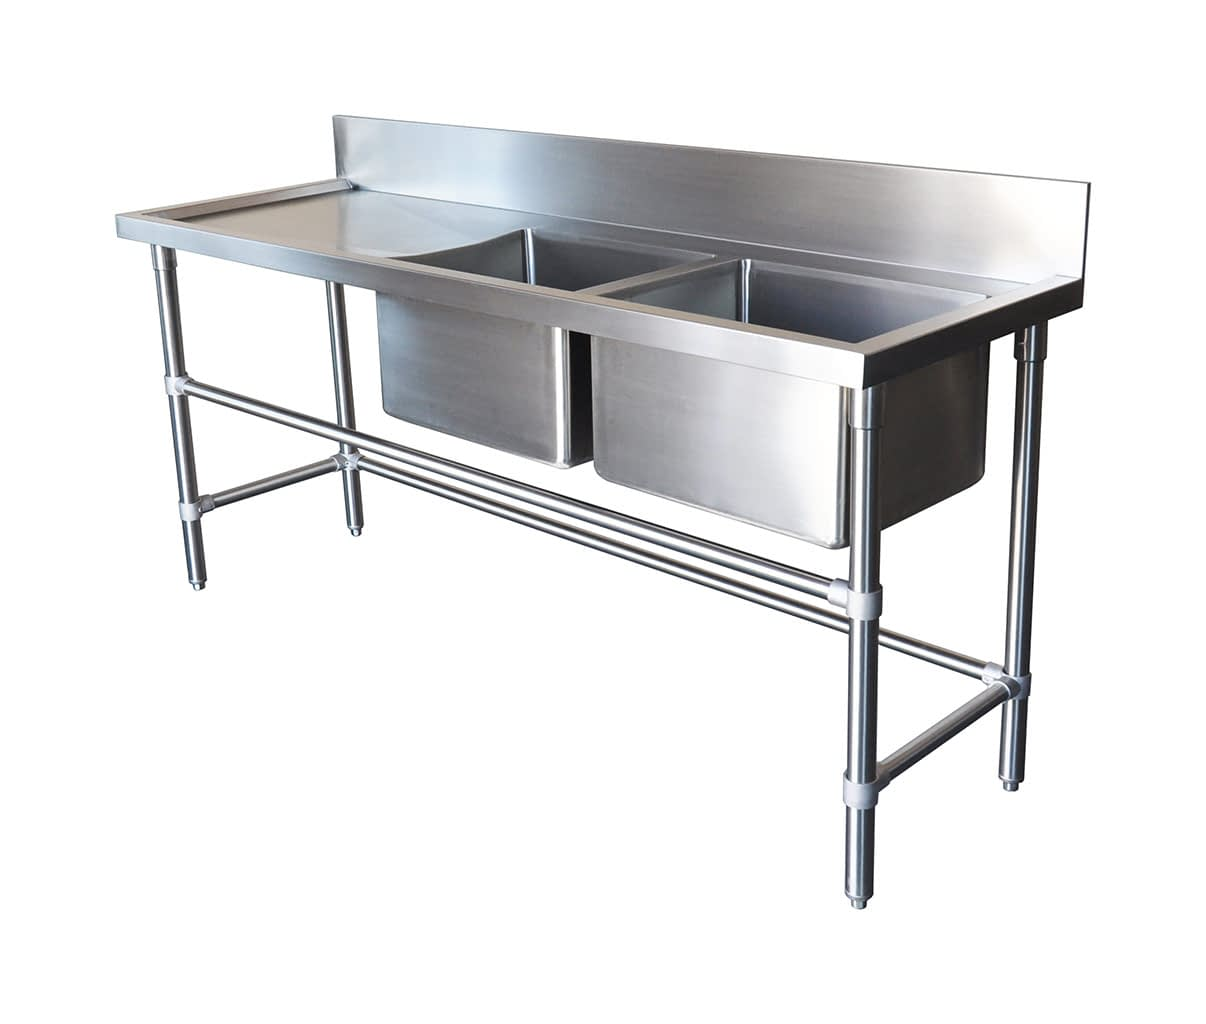 Double Bowl Stainless Commercial Sink – Left Bench, 1900 x 610 x 900mm high